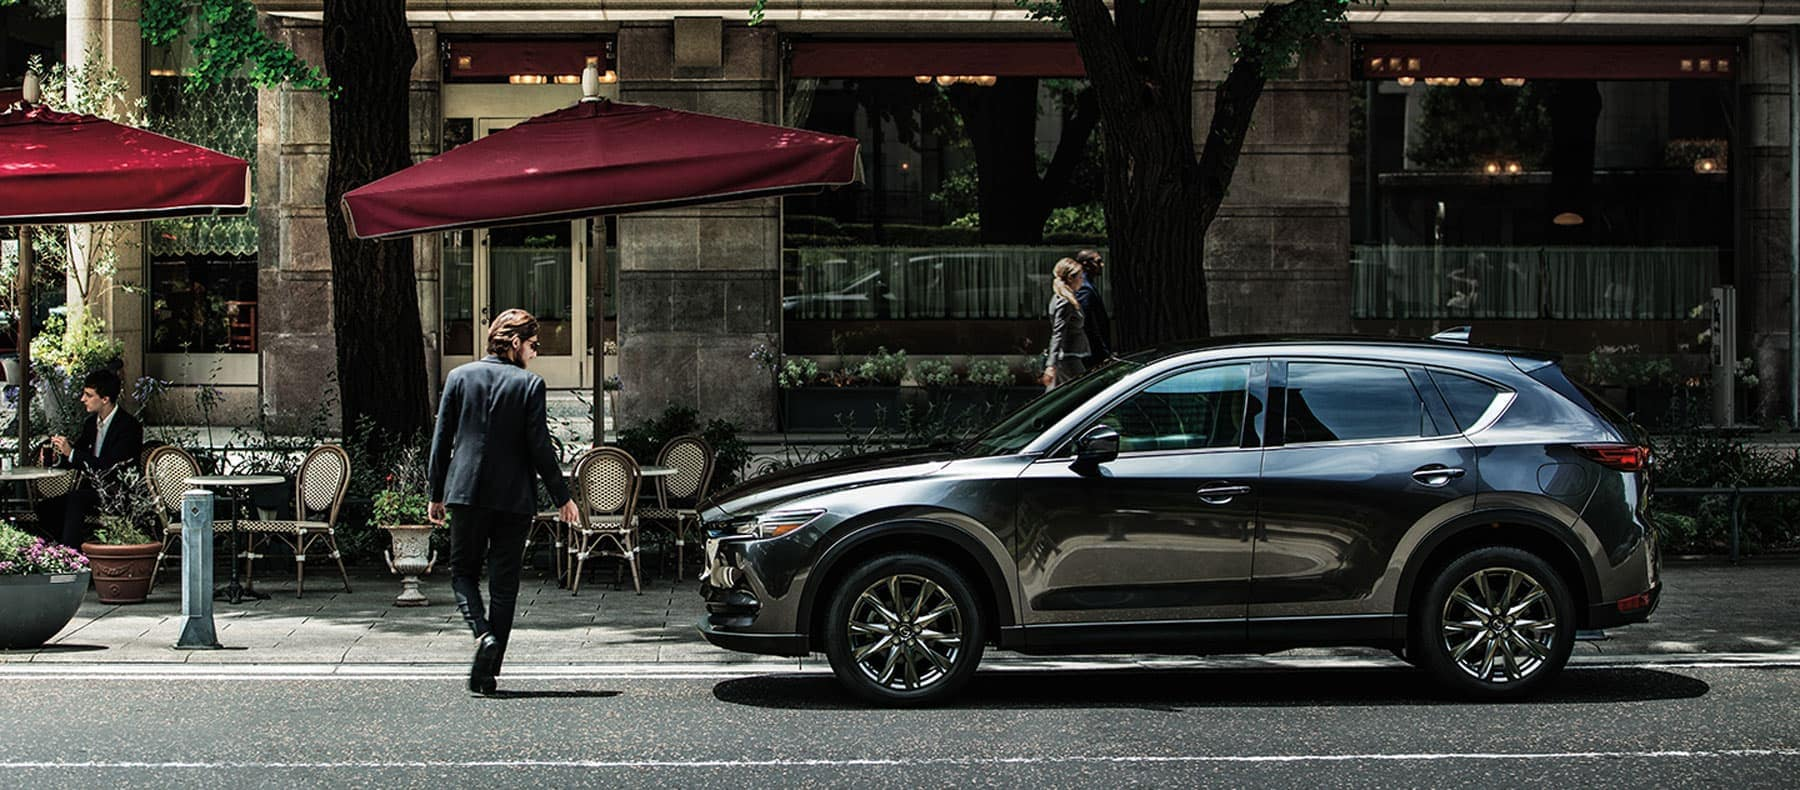 Mazda CX-5 sitting on the side of a city street